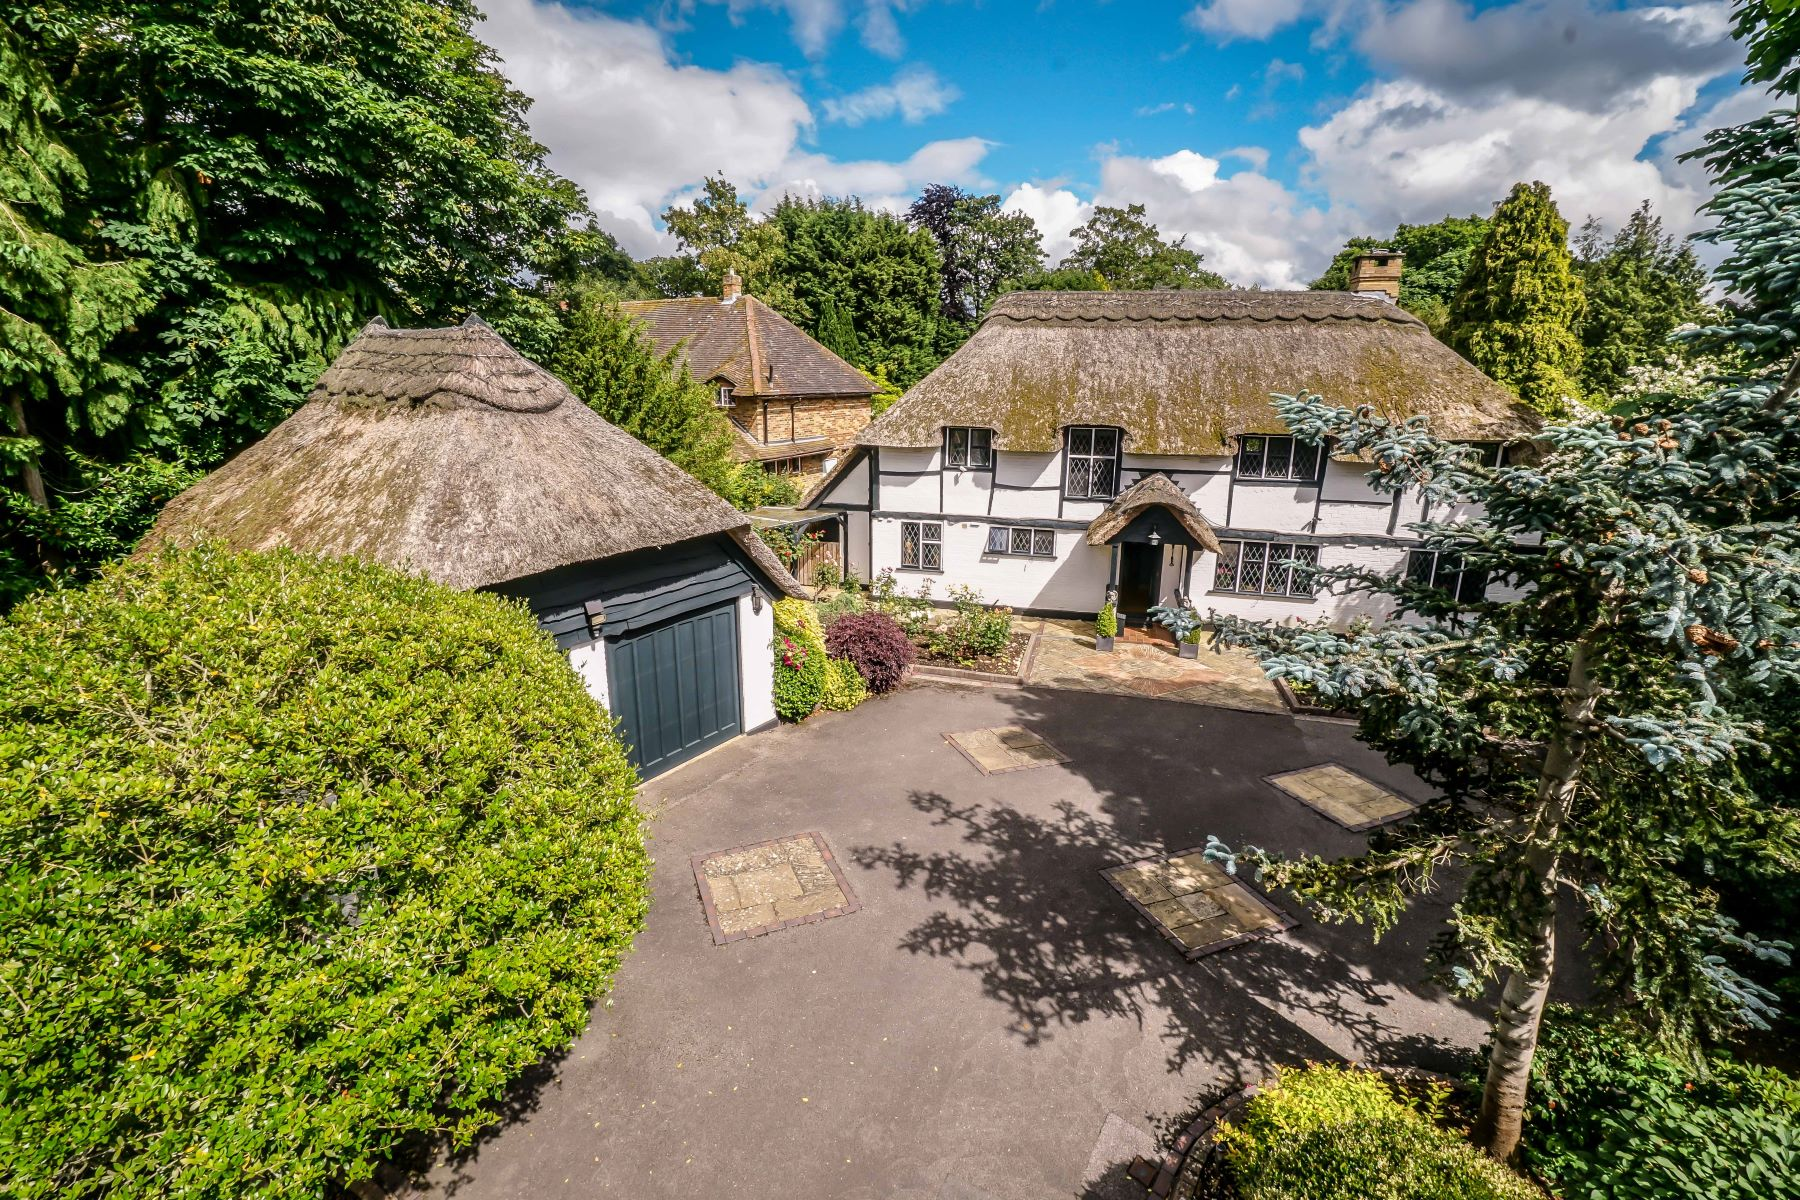 Single Family Homes for Sale at Little Thatch The Chase Oxshott, England KT22 0HR United Kingdom